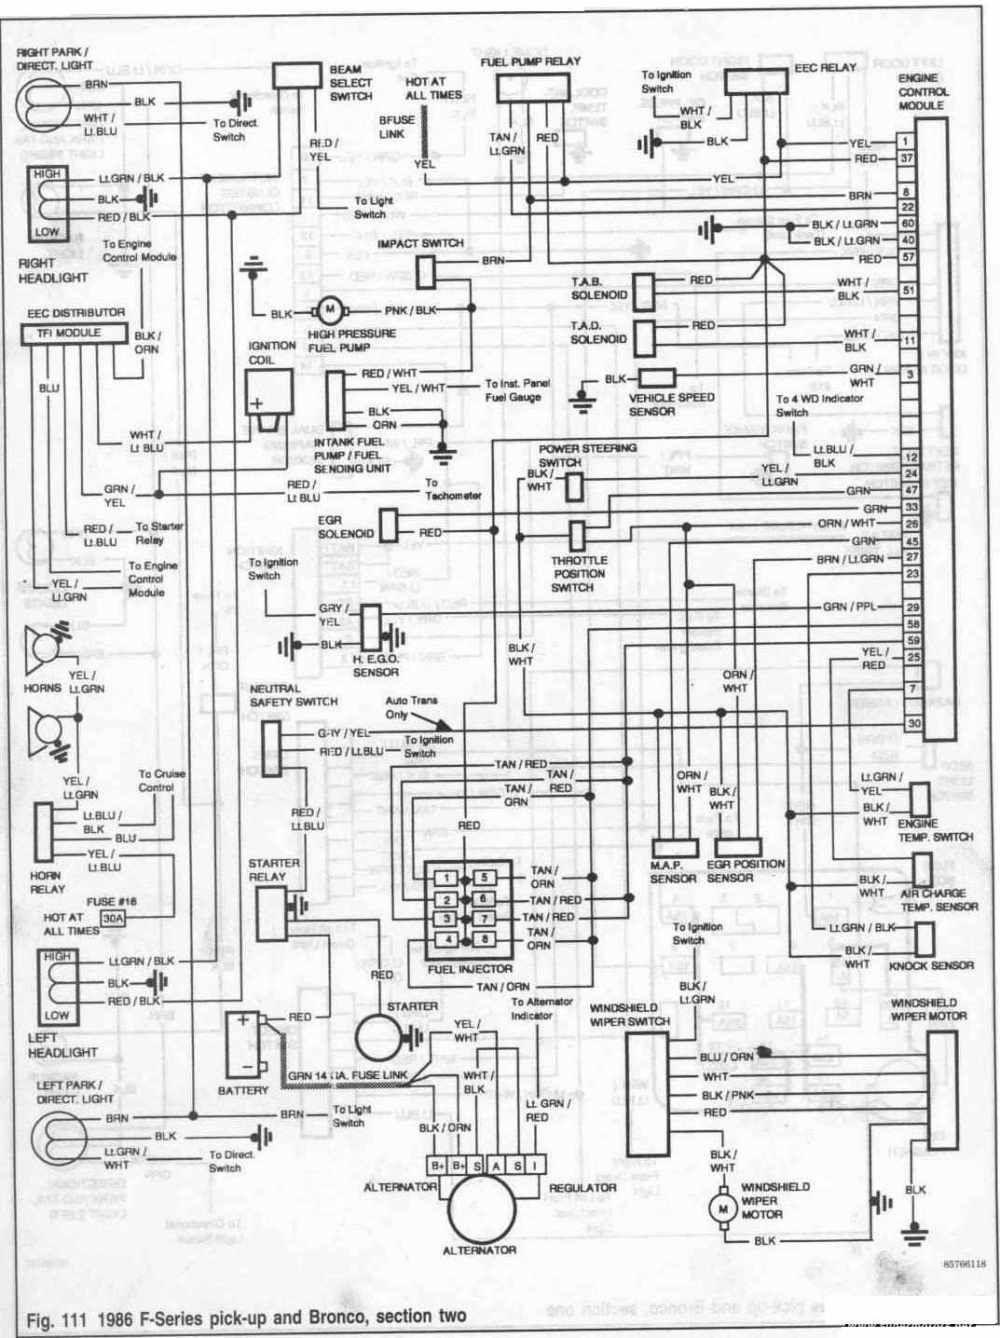 medium resolution of 1985 ford bronco fuse box diagram explained wiring diagrams ford bronco engine mounts 1990 ford bronco